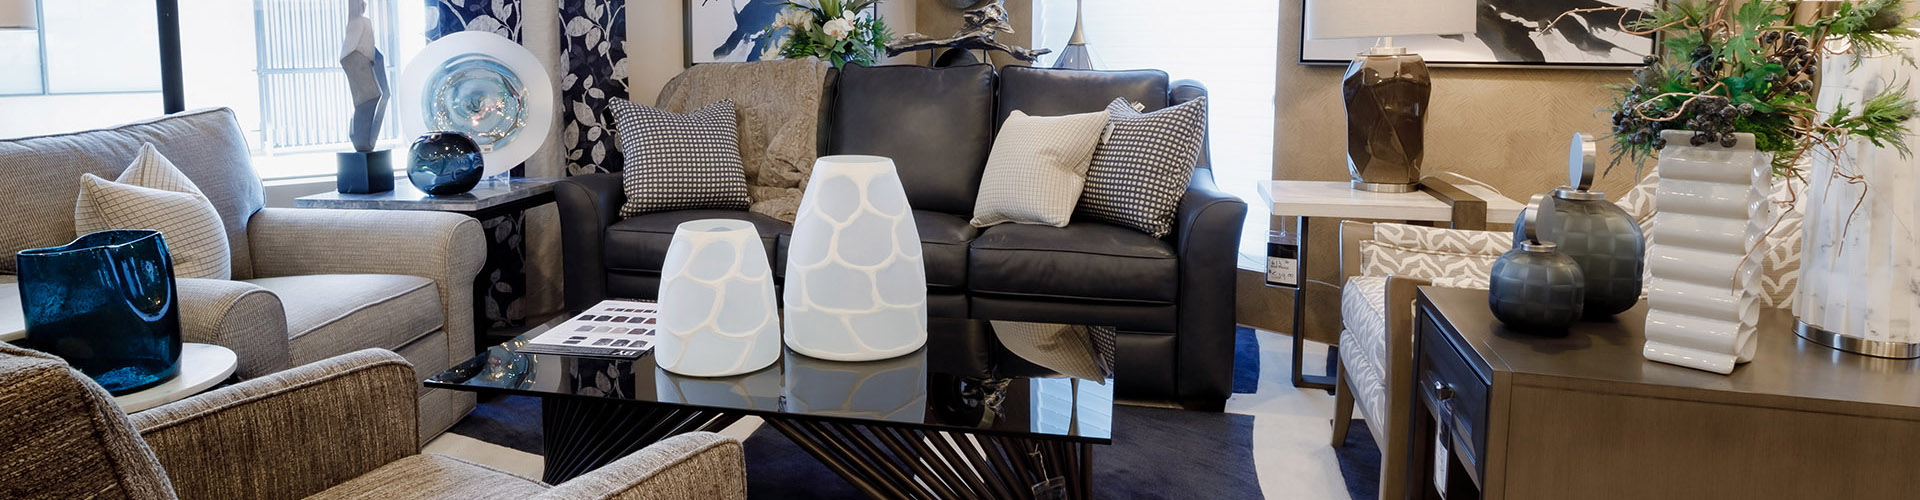 spencer carlson furniture and design